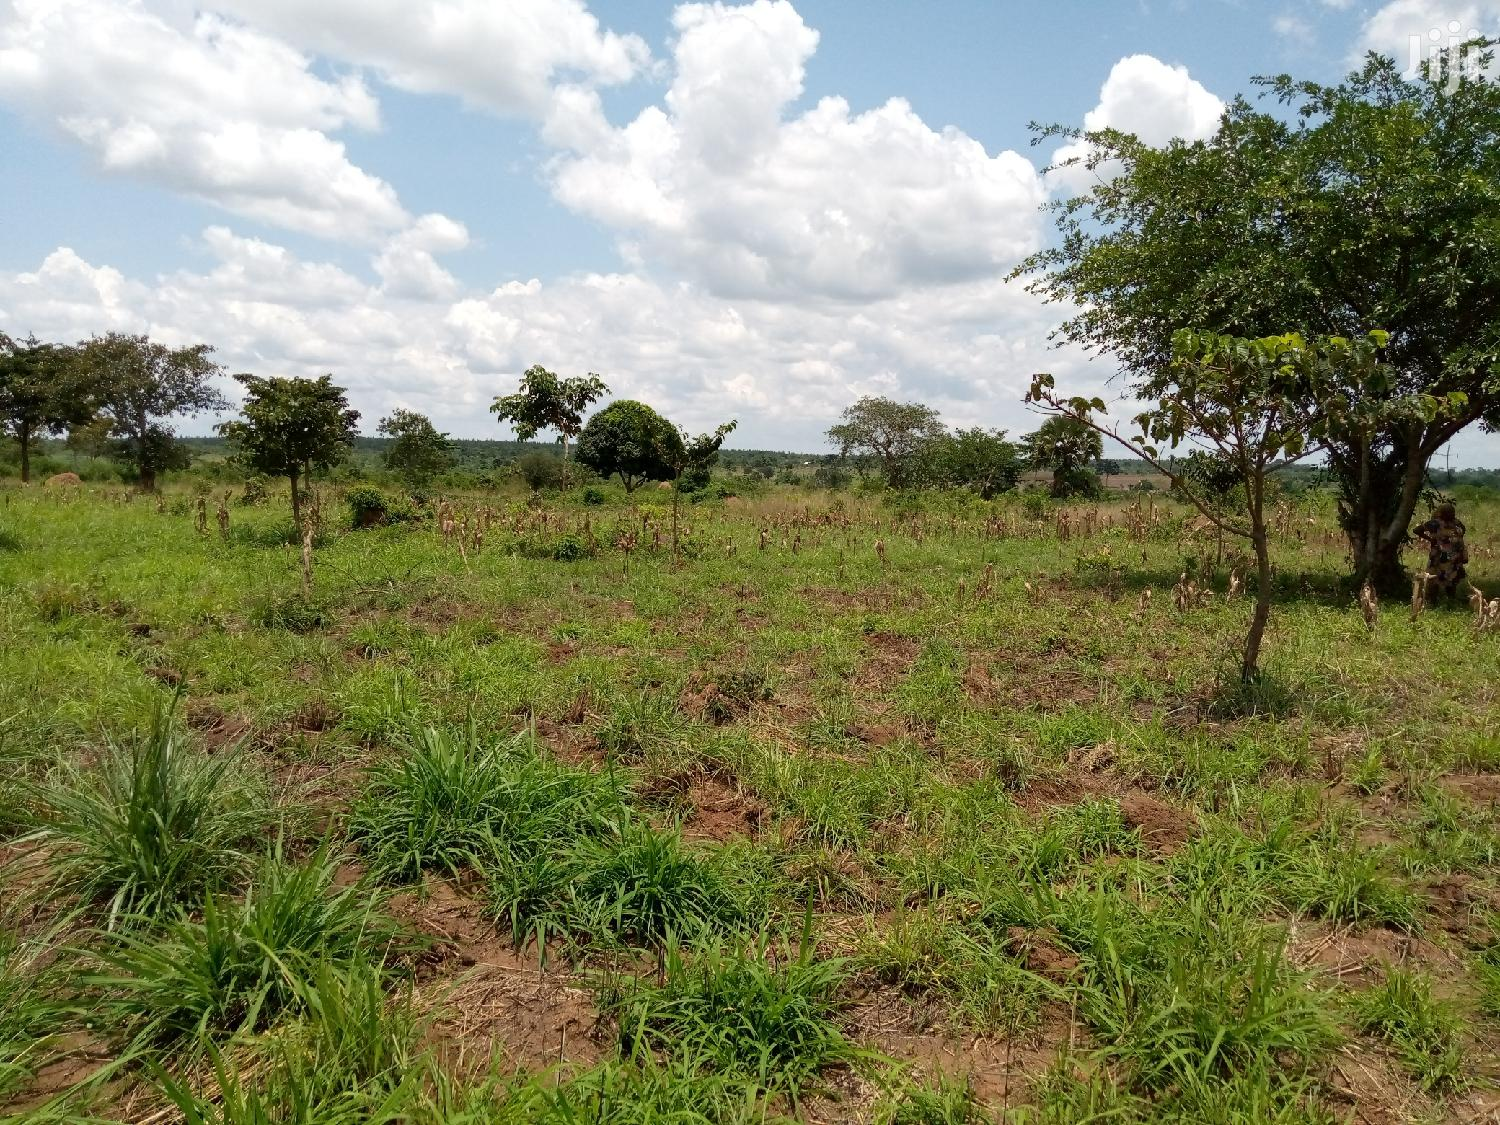 7 Acres Of Land In Kabunyata Luweero For Sale | Land & Plots For Sale for sale in Luweero, Central Region, Uganda